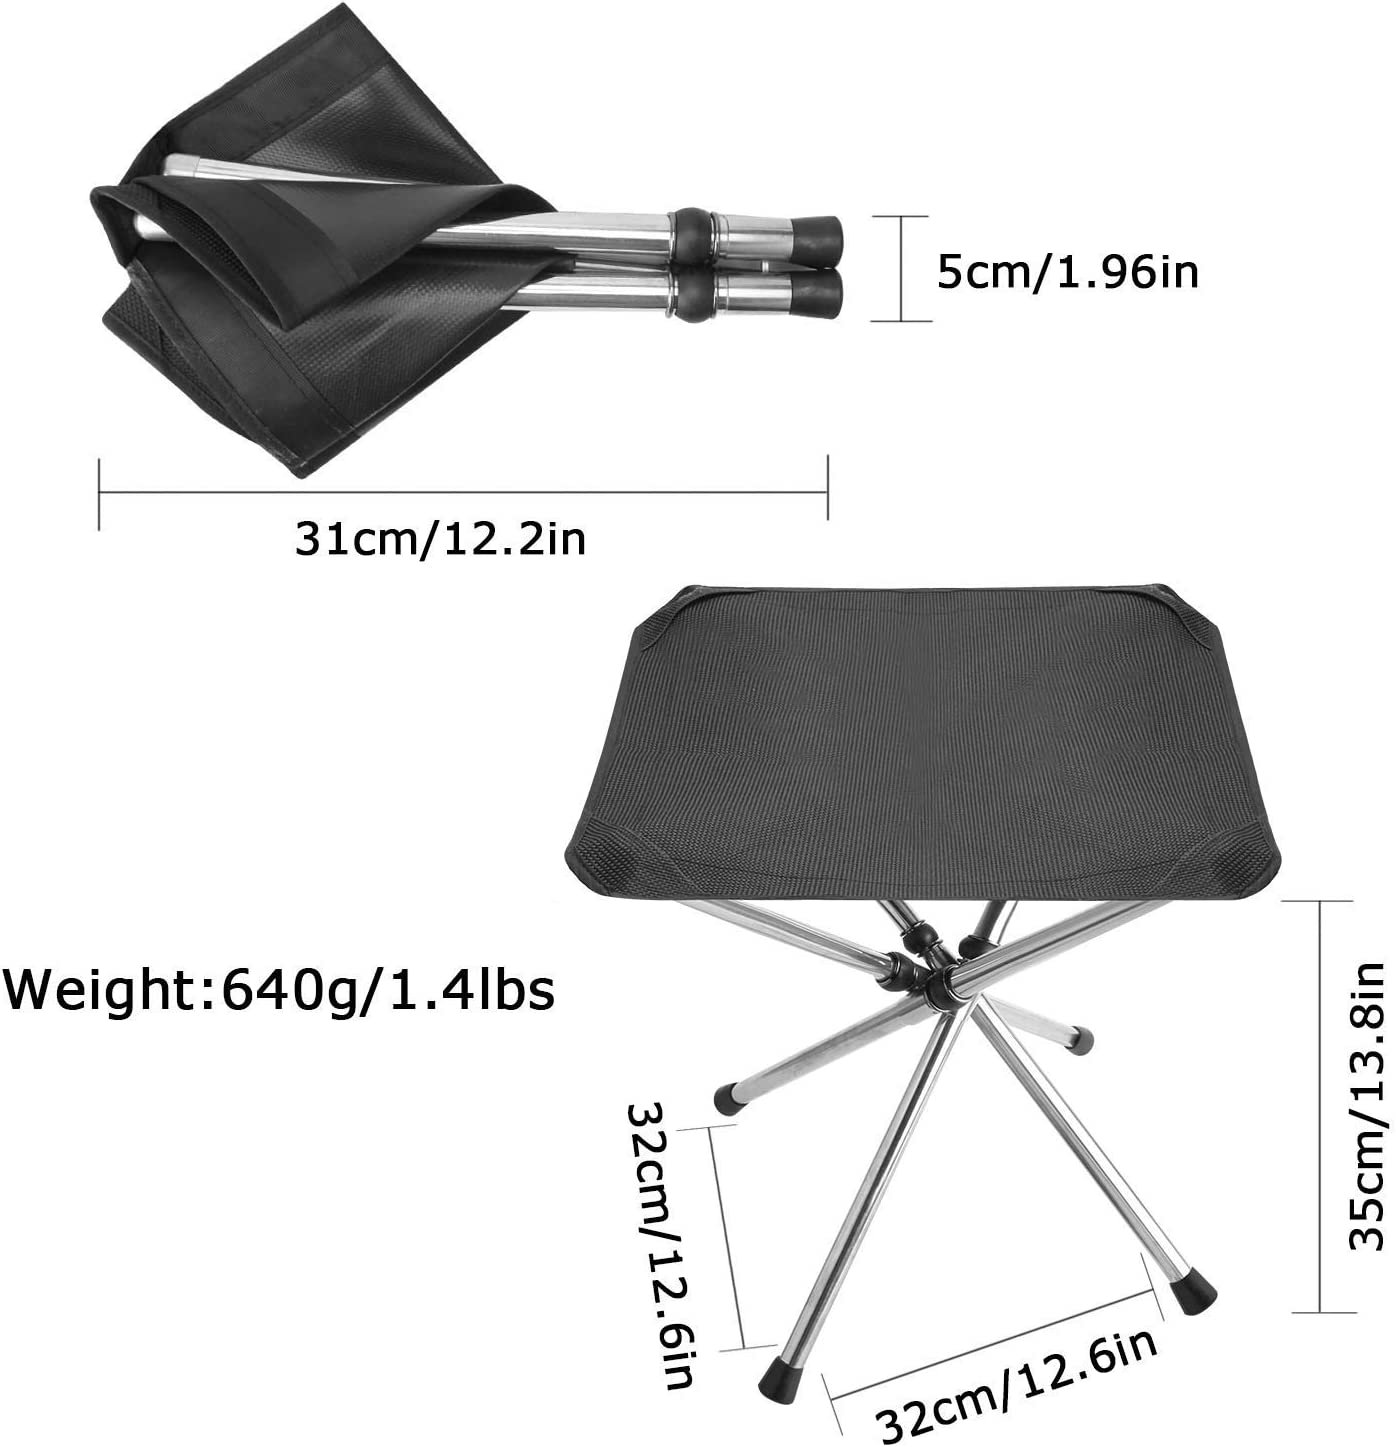 Bottle Buckle for Free Hiking Stainless Steel Foldable Chair for Camping Folding Camping Stool Portable Chair 12.6 inch Large-Size Lightweight Camping Stool BBQ Travel Fishing Beach